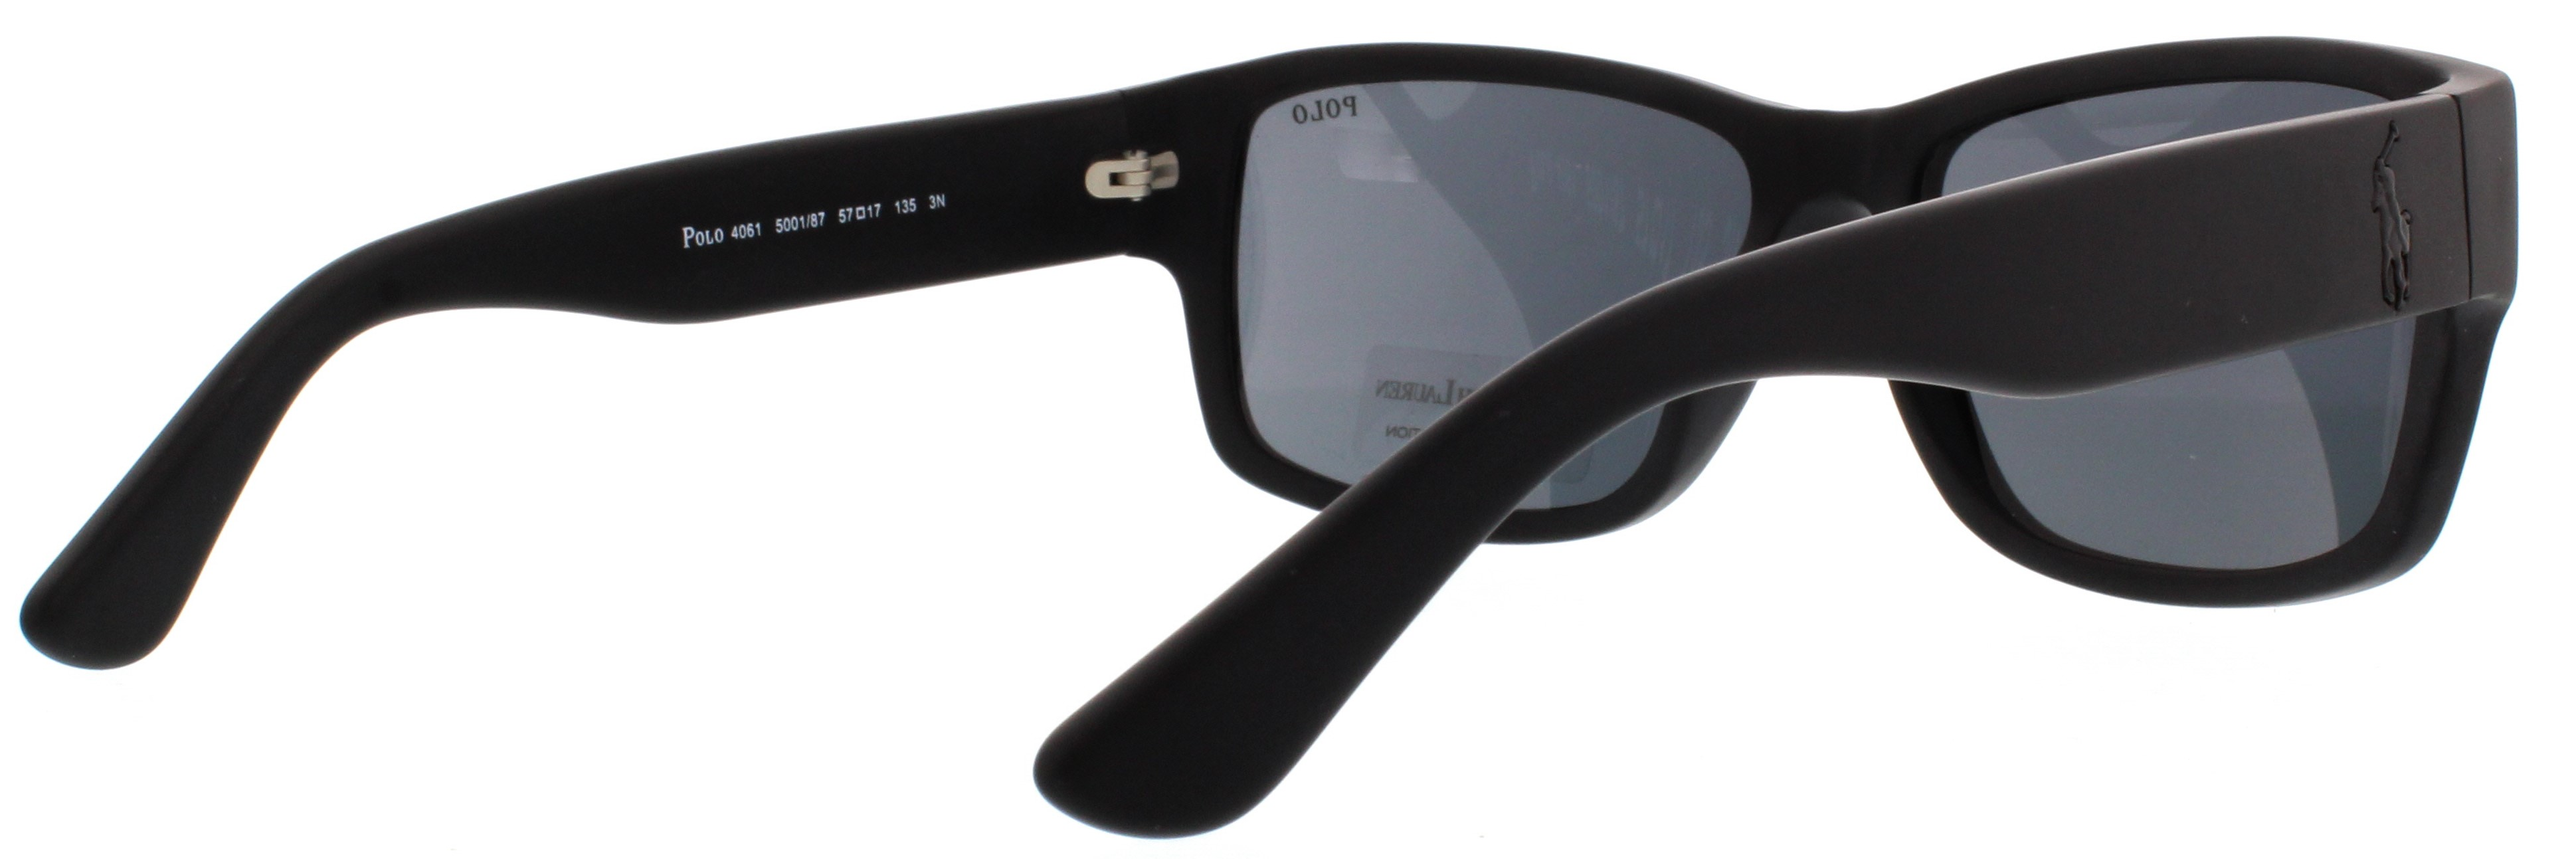 886498b7799 POLO Sunglasses PH4061 500187 Matte Black 57MM 713132375631